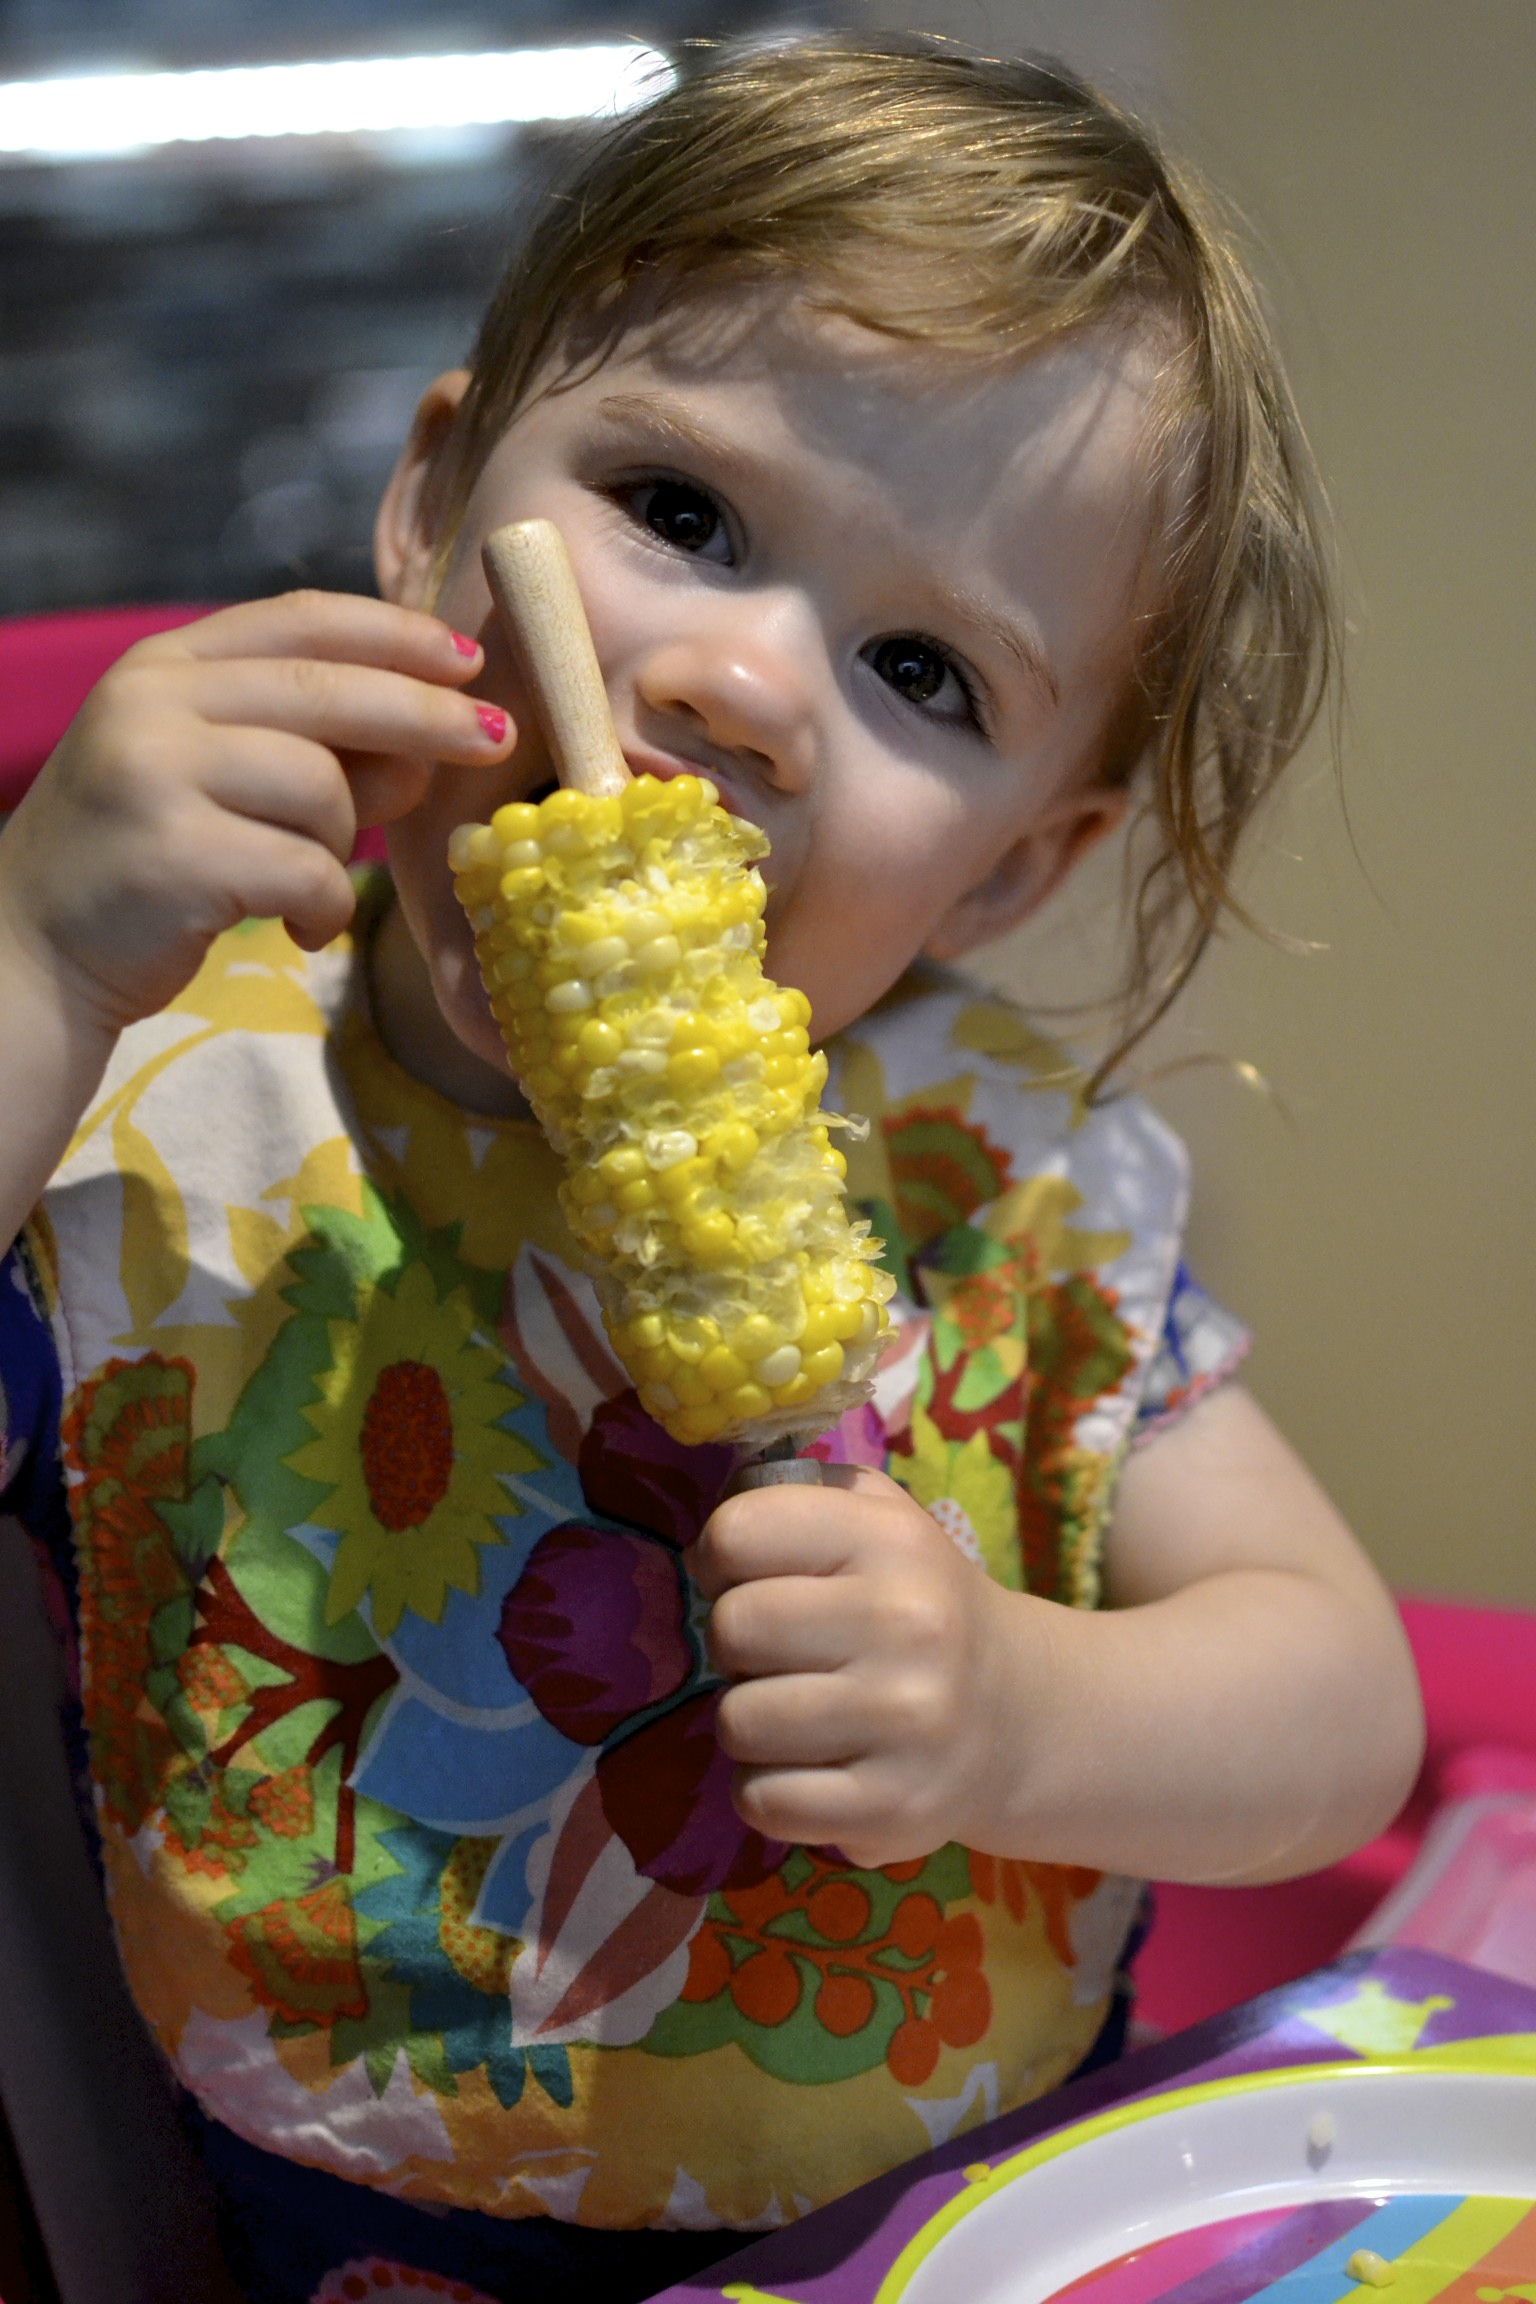 lover of corn on the cob